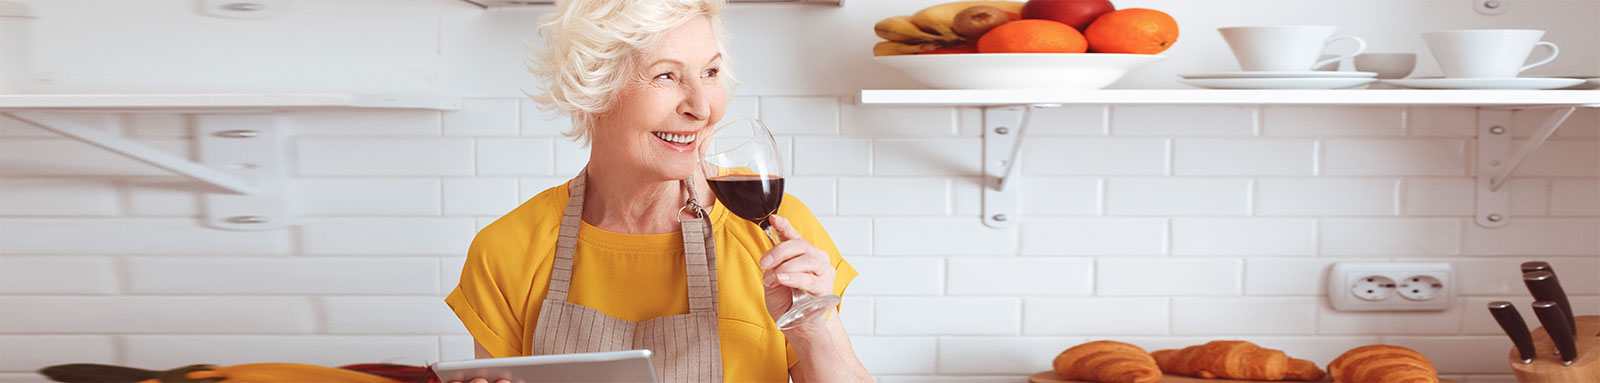 Elderly woman drinking red wine in the kitchen while holding tablet